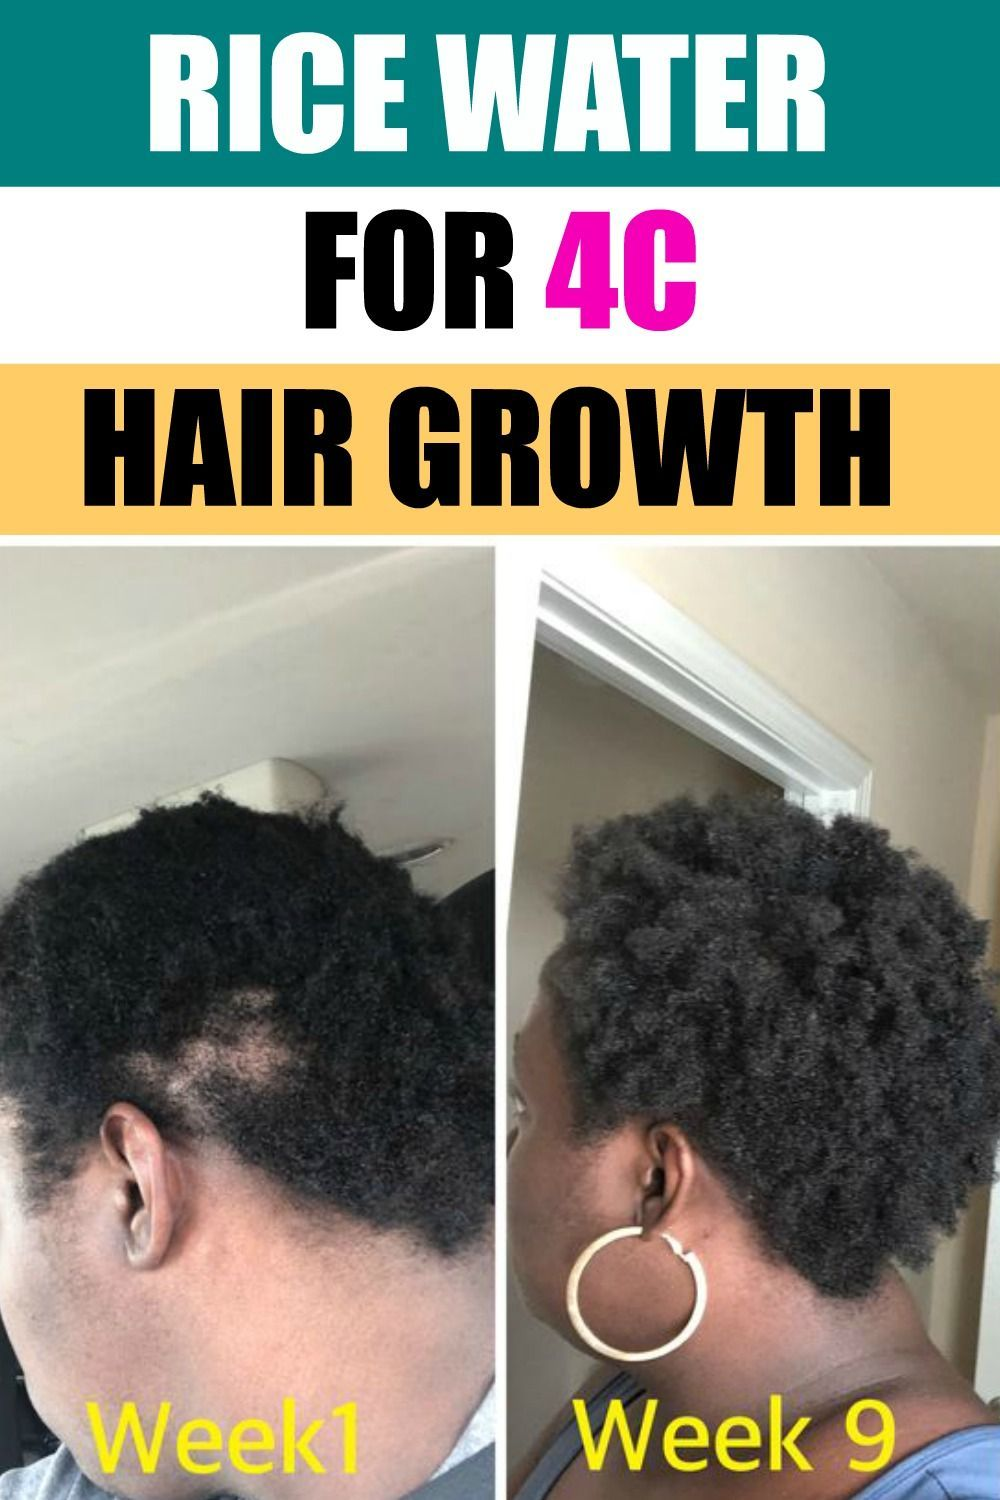 How To Properly Use Fermented Rice Water For Natural Hair Growth In 2020 Natural Hair Growth Treatment Hair Growth Diy Hair Growth Black Women